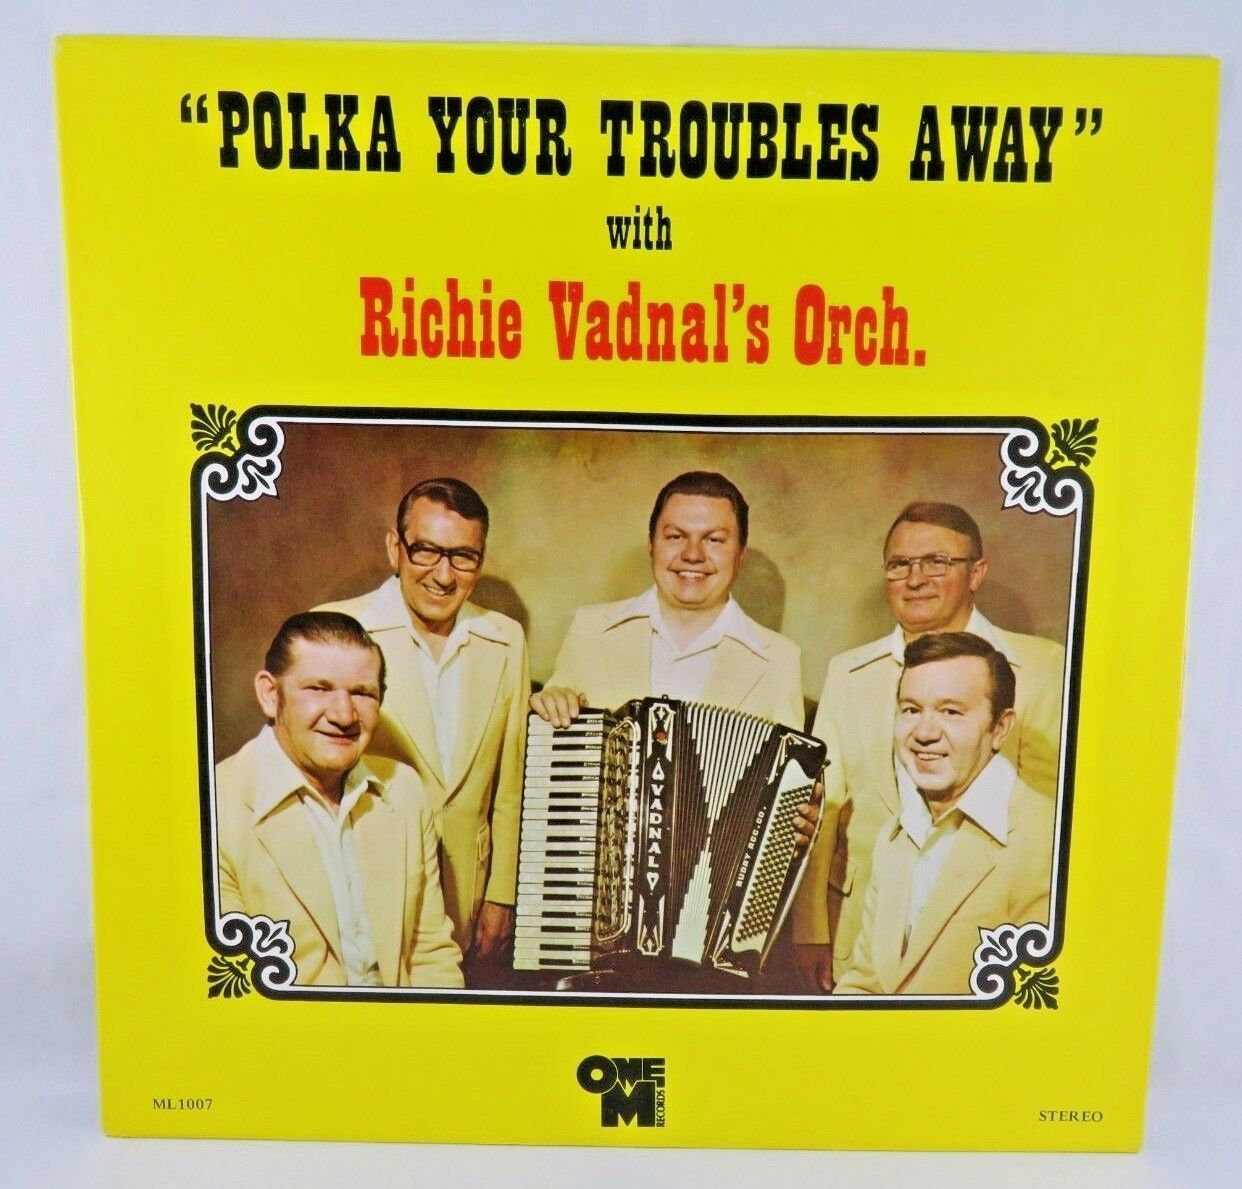 "Primary image for Polka your troubles away 12"" stereo vinyl Richie Vadnal & Orch. One M records"